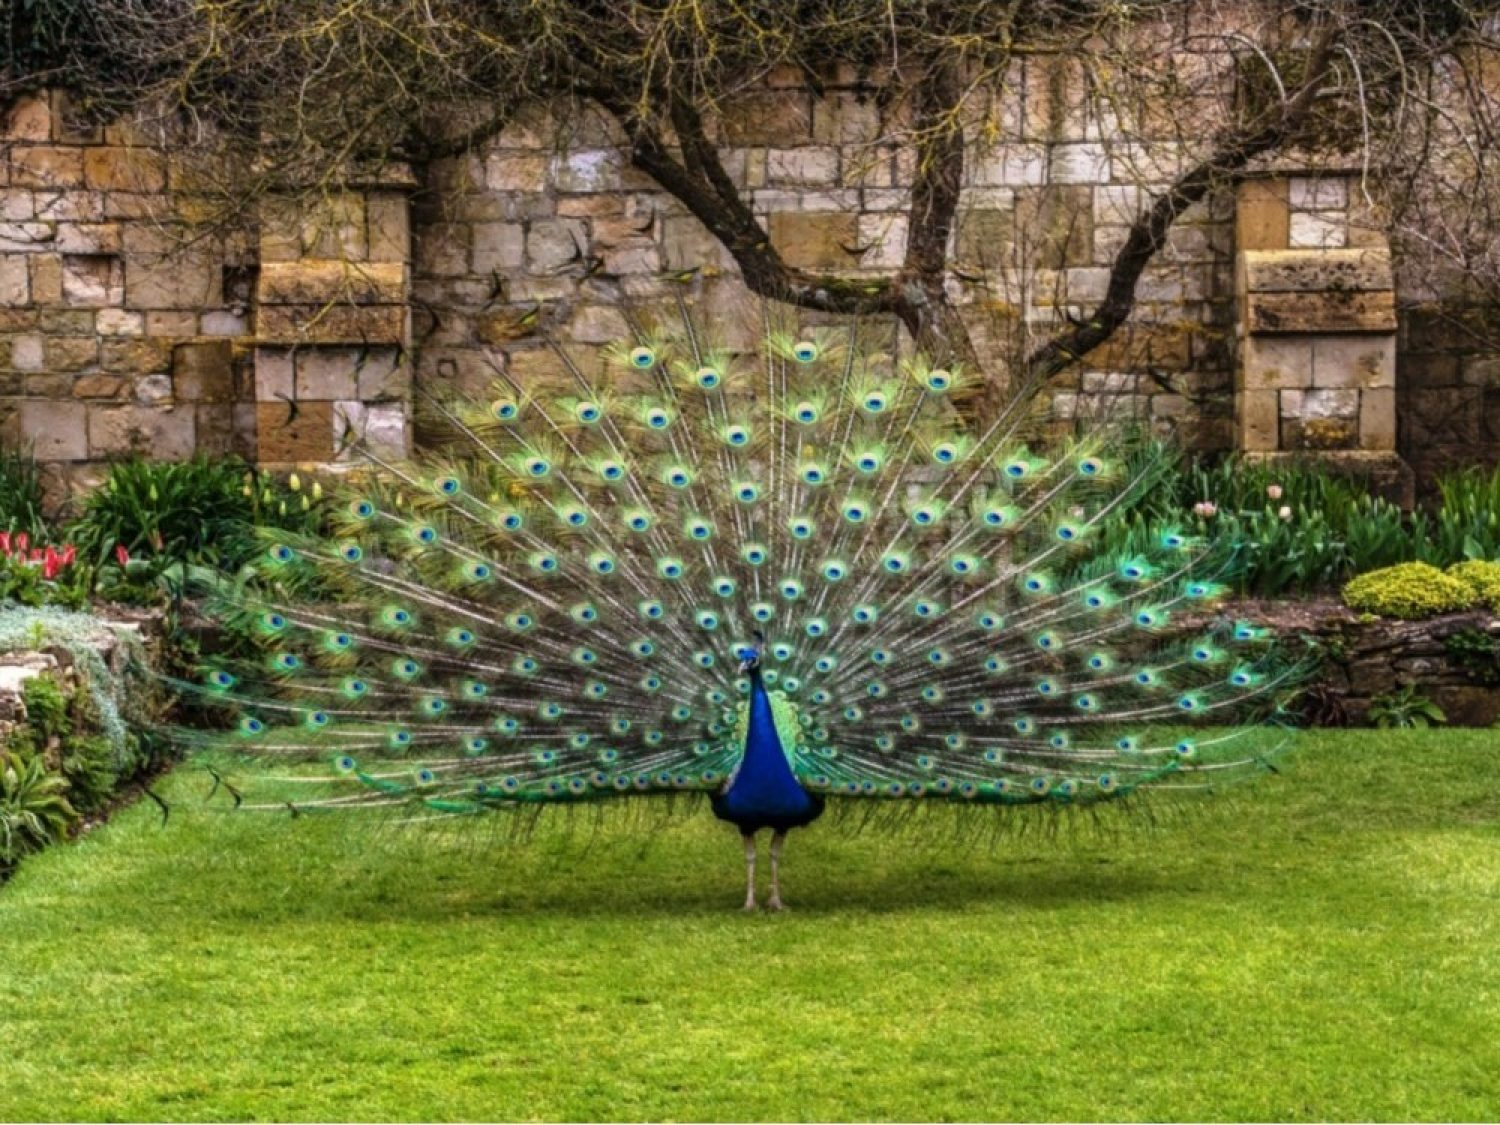 A peacock displays it's plumage on the lawn of the Secret Garden